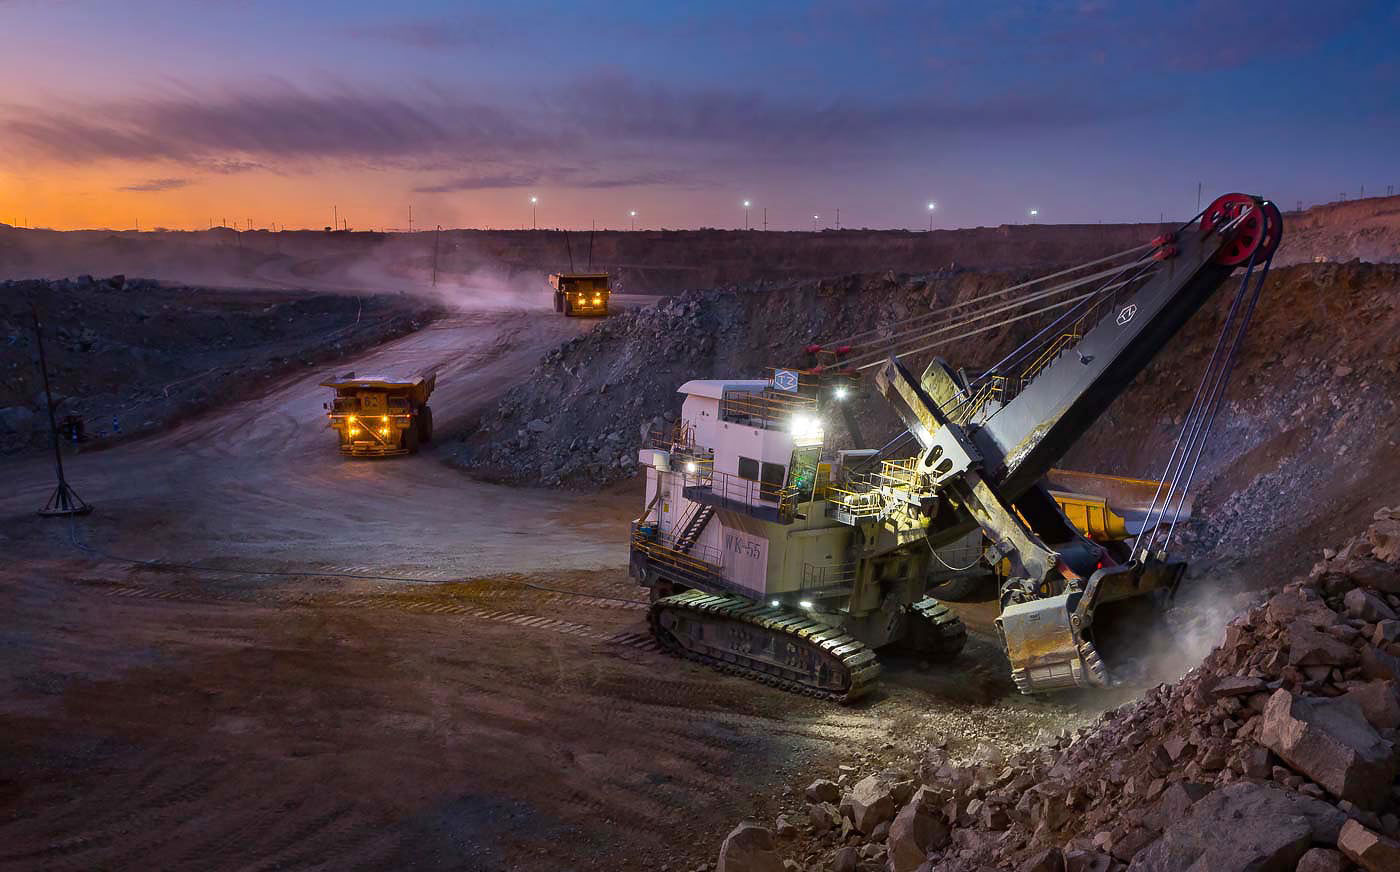 Hydraulic shovel and haul trucks at work in an open cast mine - mining photographer portfolio